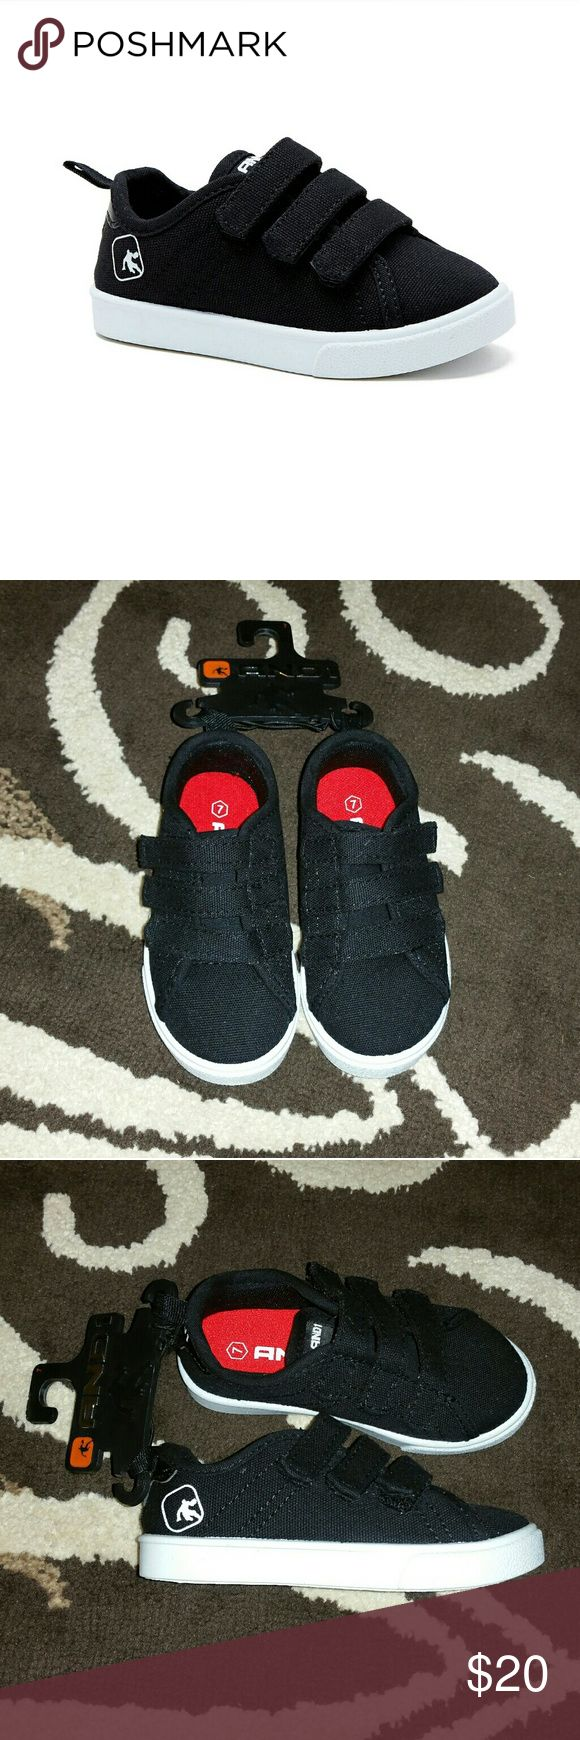 Toddler Boy Shoe's AND1, Toddler Boy Shoe's,  Size 7  Color Black/White  Brand new, Never worn,  Comfort padded insole, Easy on/Easy off,  Sweet looking Boy Shoe's!!! Have any questions before purchase just ask and I'll try to answer!!!  All sales are final!!!  NO RETURNS!!! And1 Shoes Sneakers